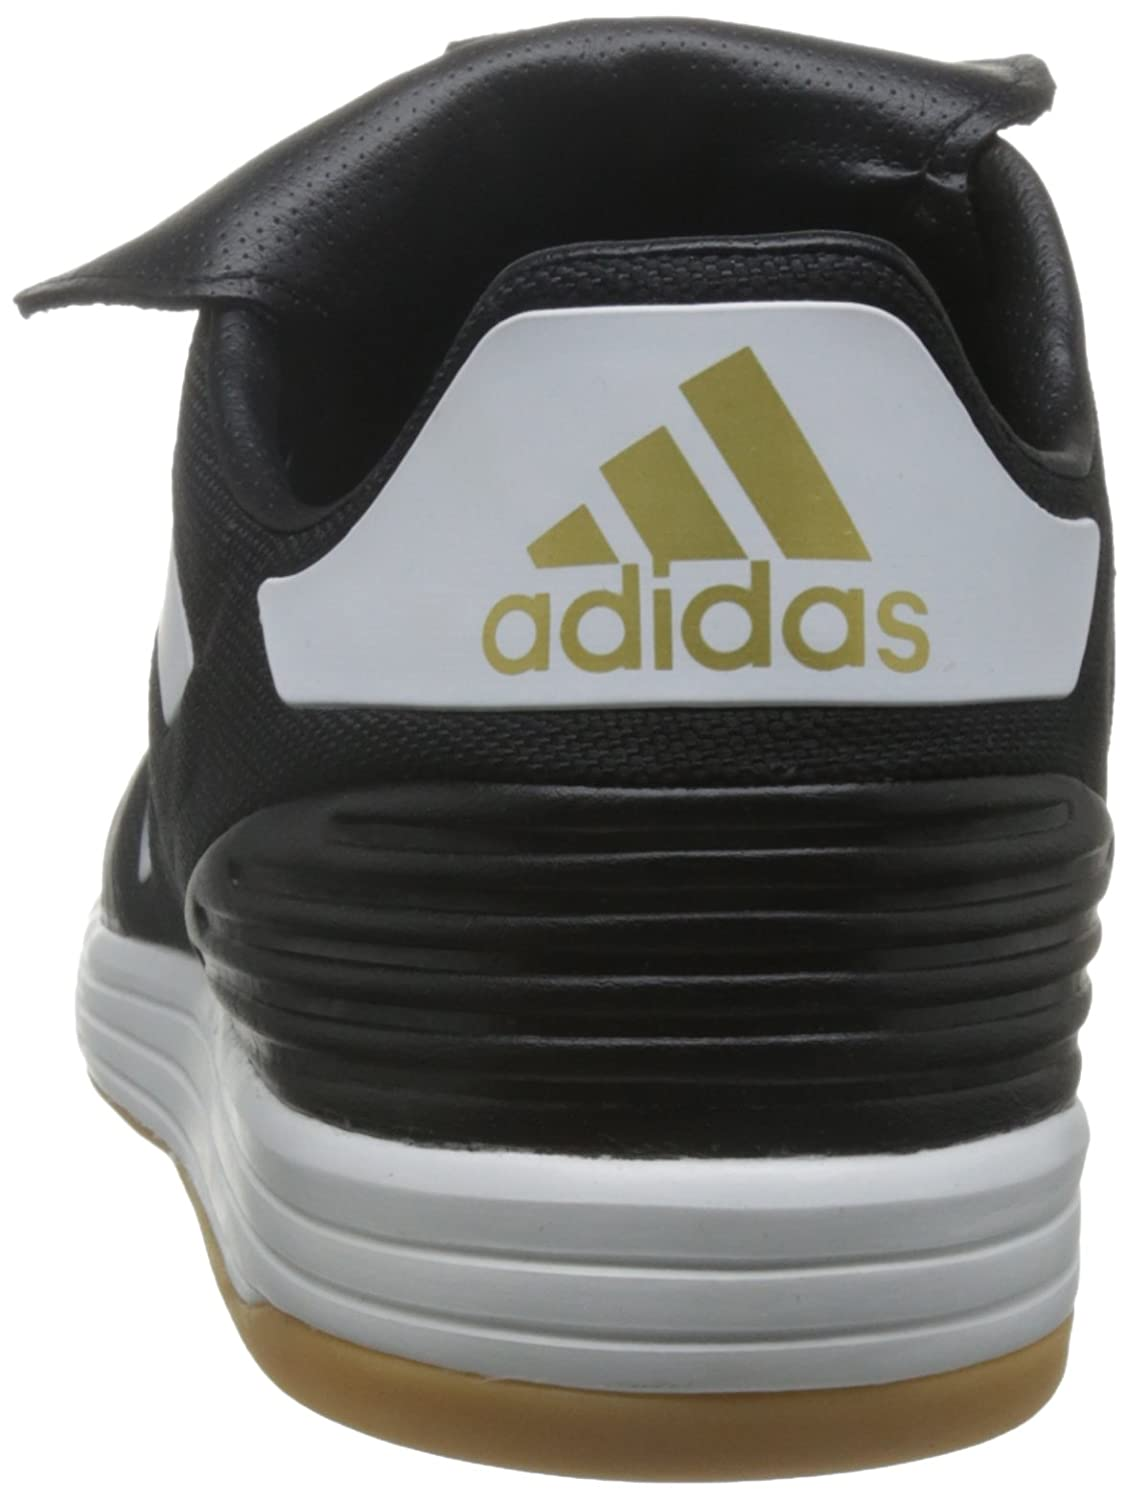 reputable site be63f bc890 adidas Copa Tango 17.2 TR, Chaussures de Football Homme, Noir (Core Black